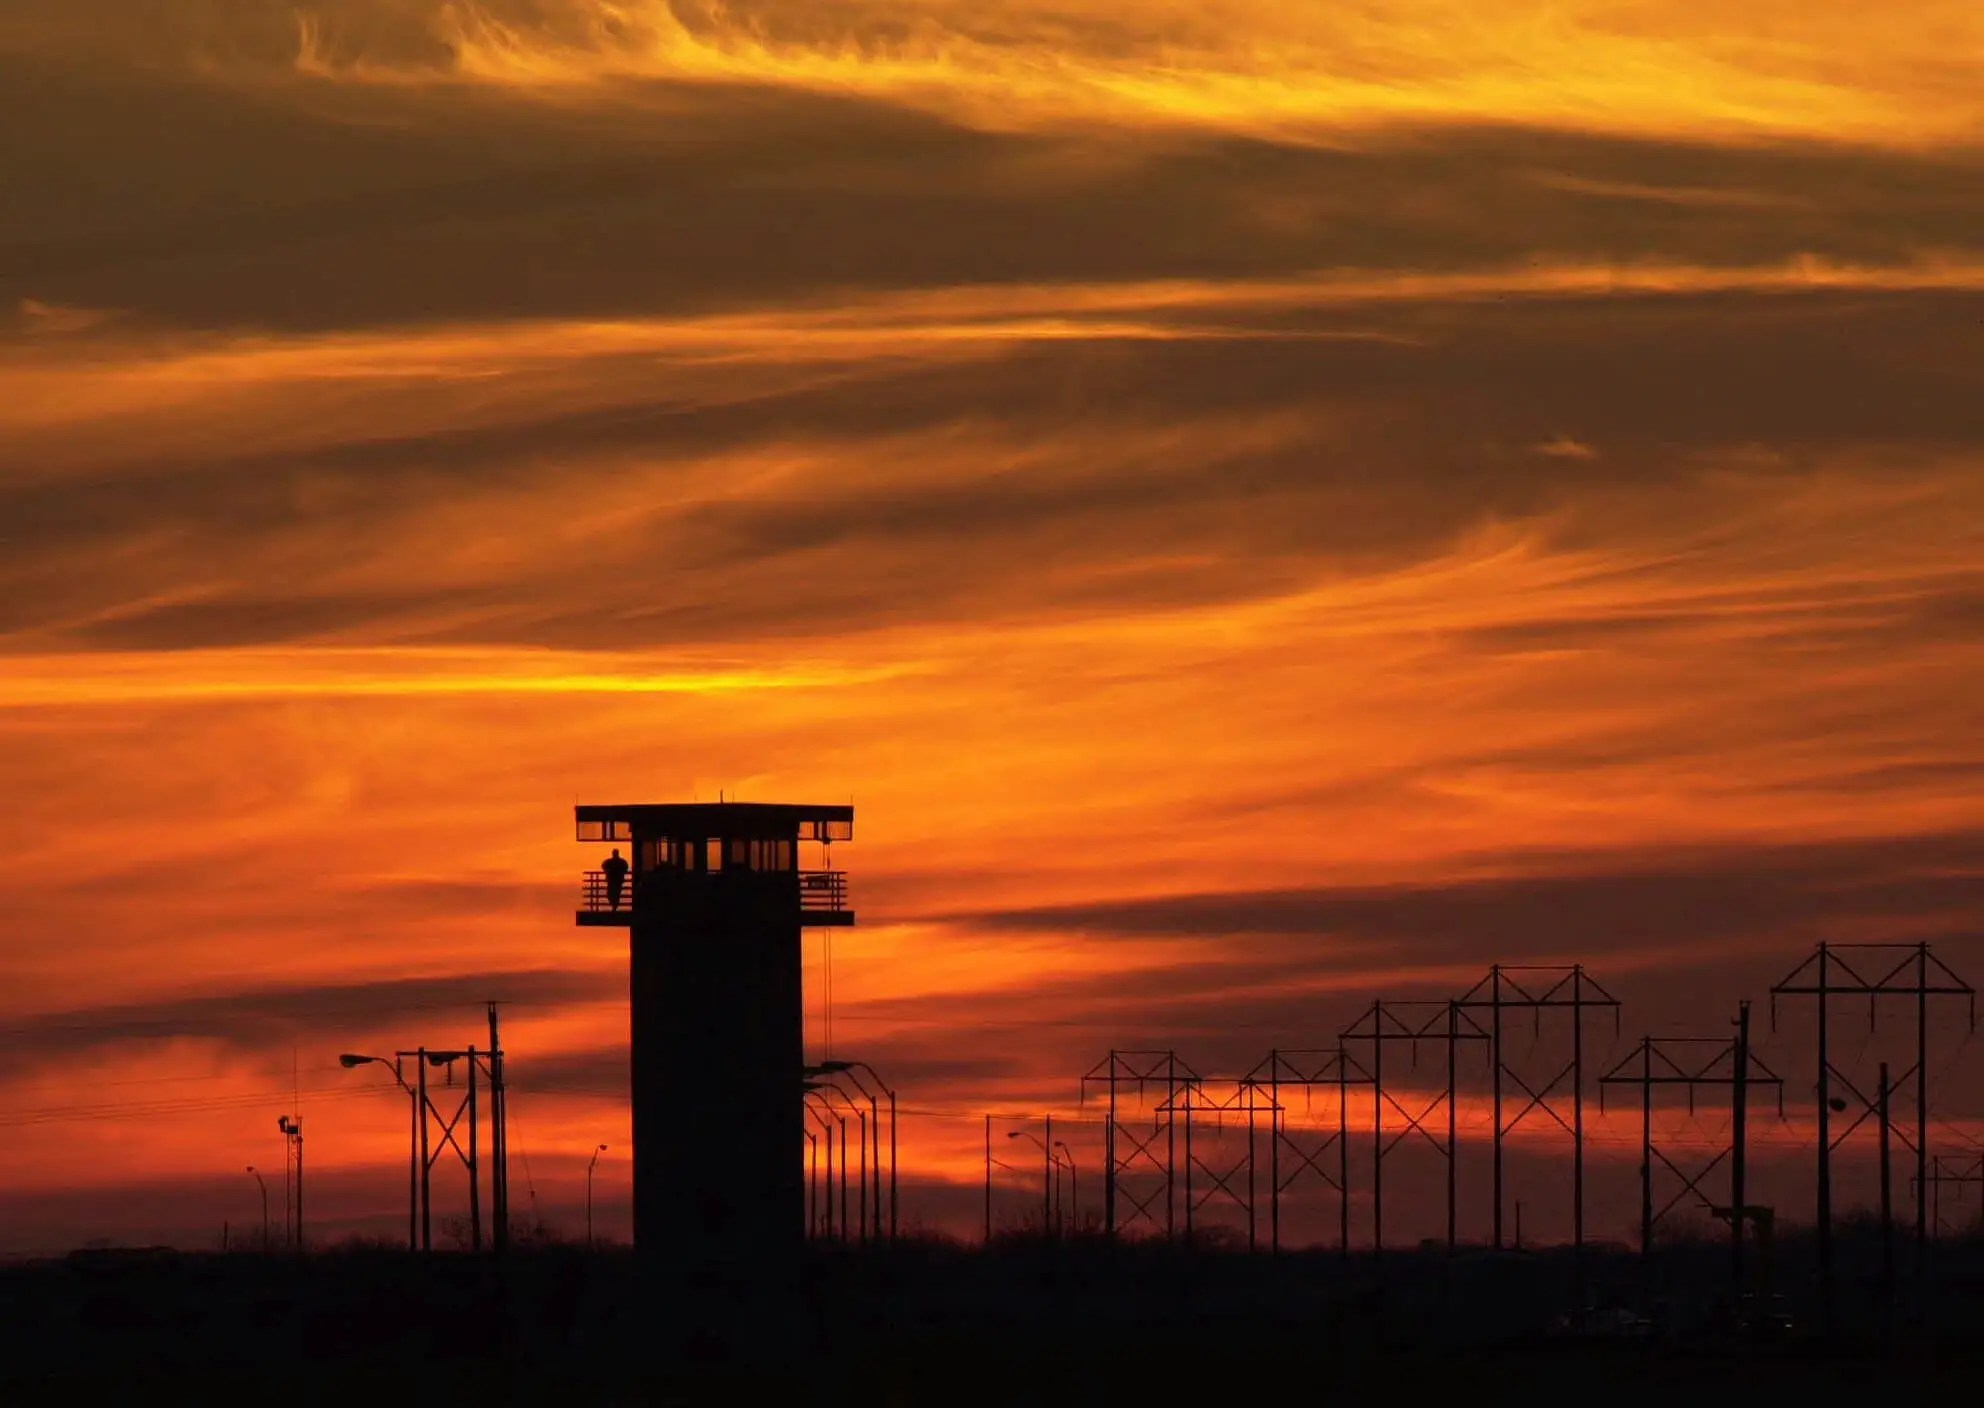 Prison Guard Tower At Sunset in Texas